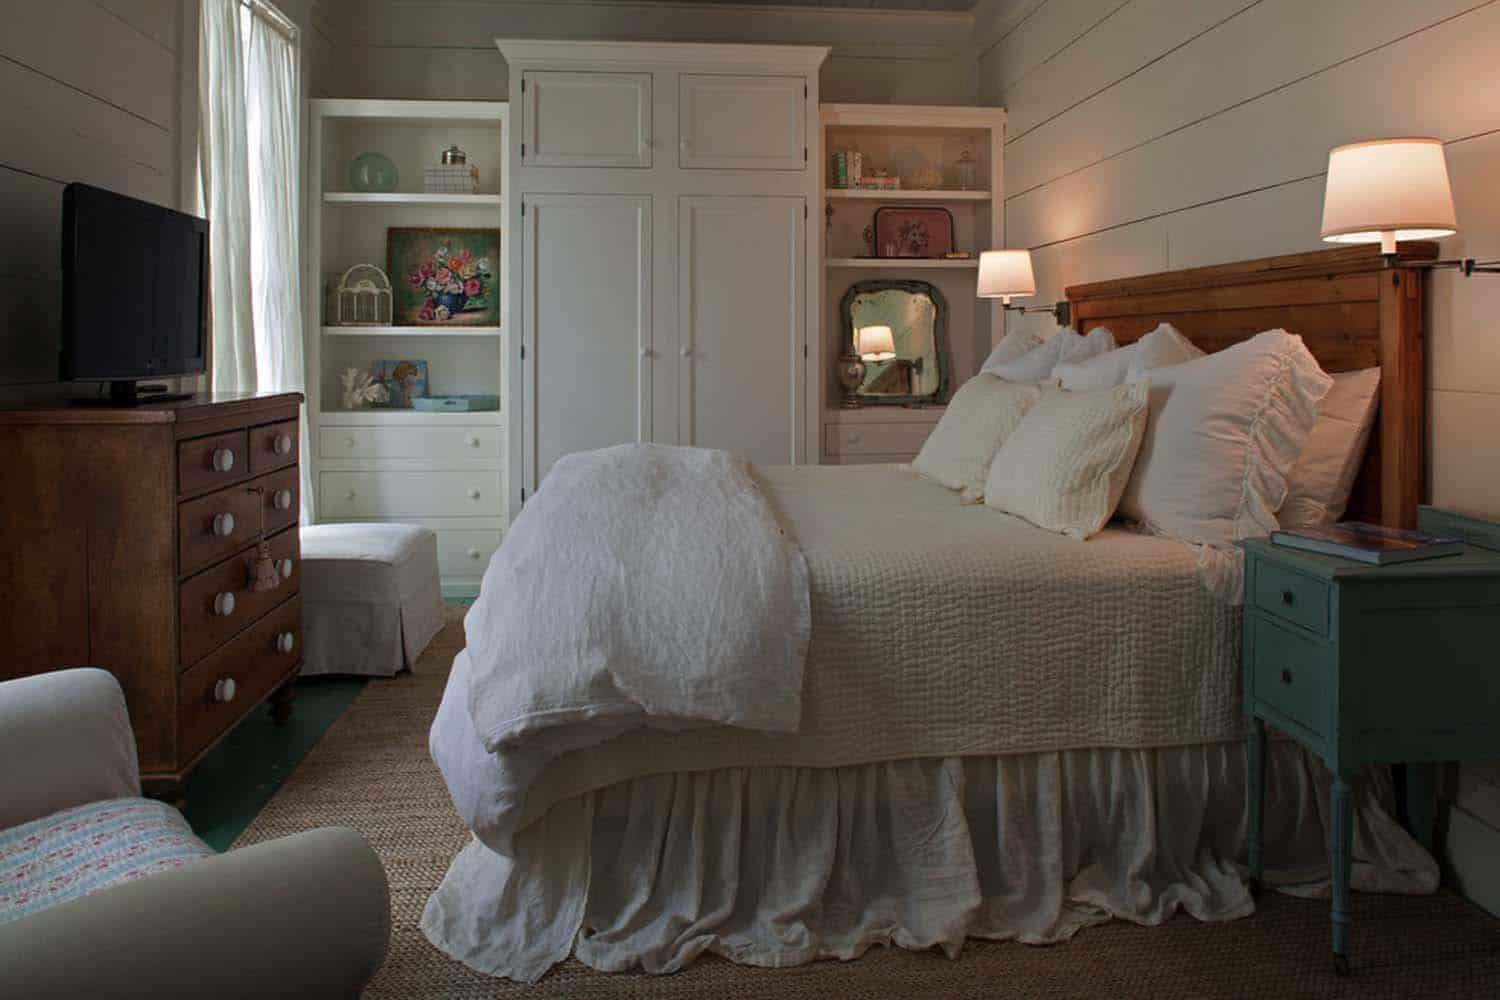 Fish Camp Beach Cottage-Historical Concepts-12-1 Kindesign